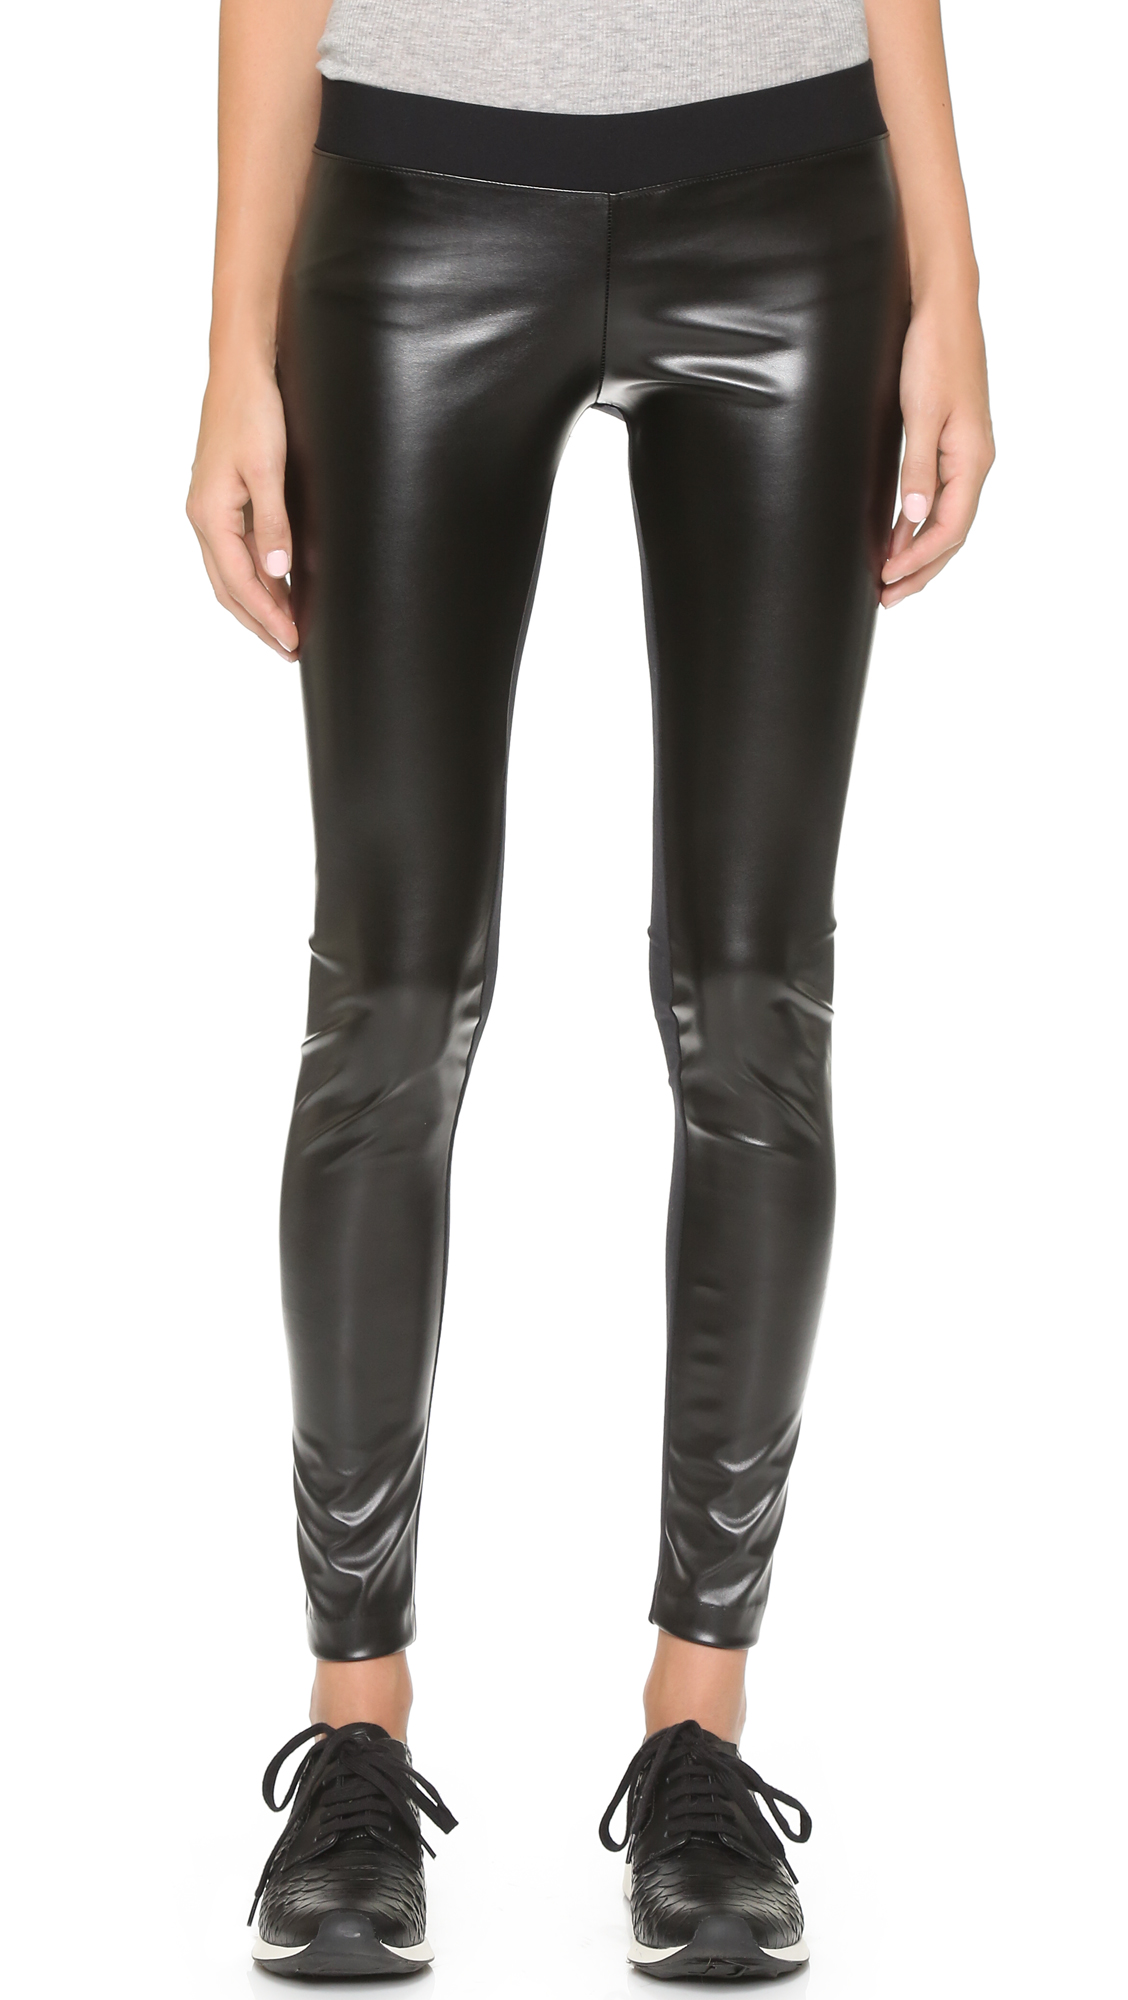 HATCH Night Out Leggings - Black